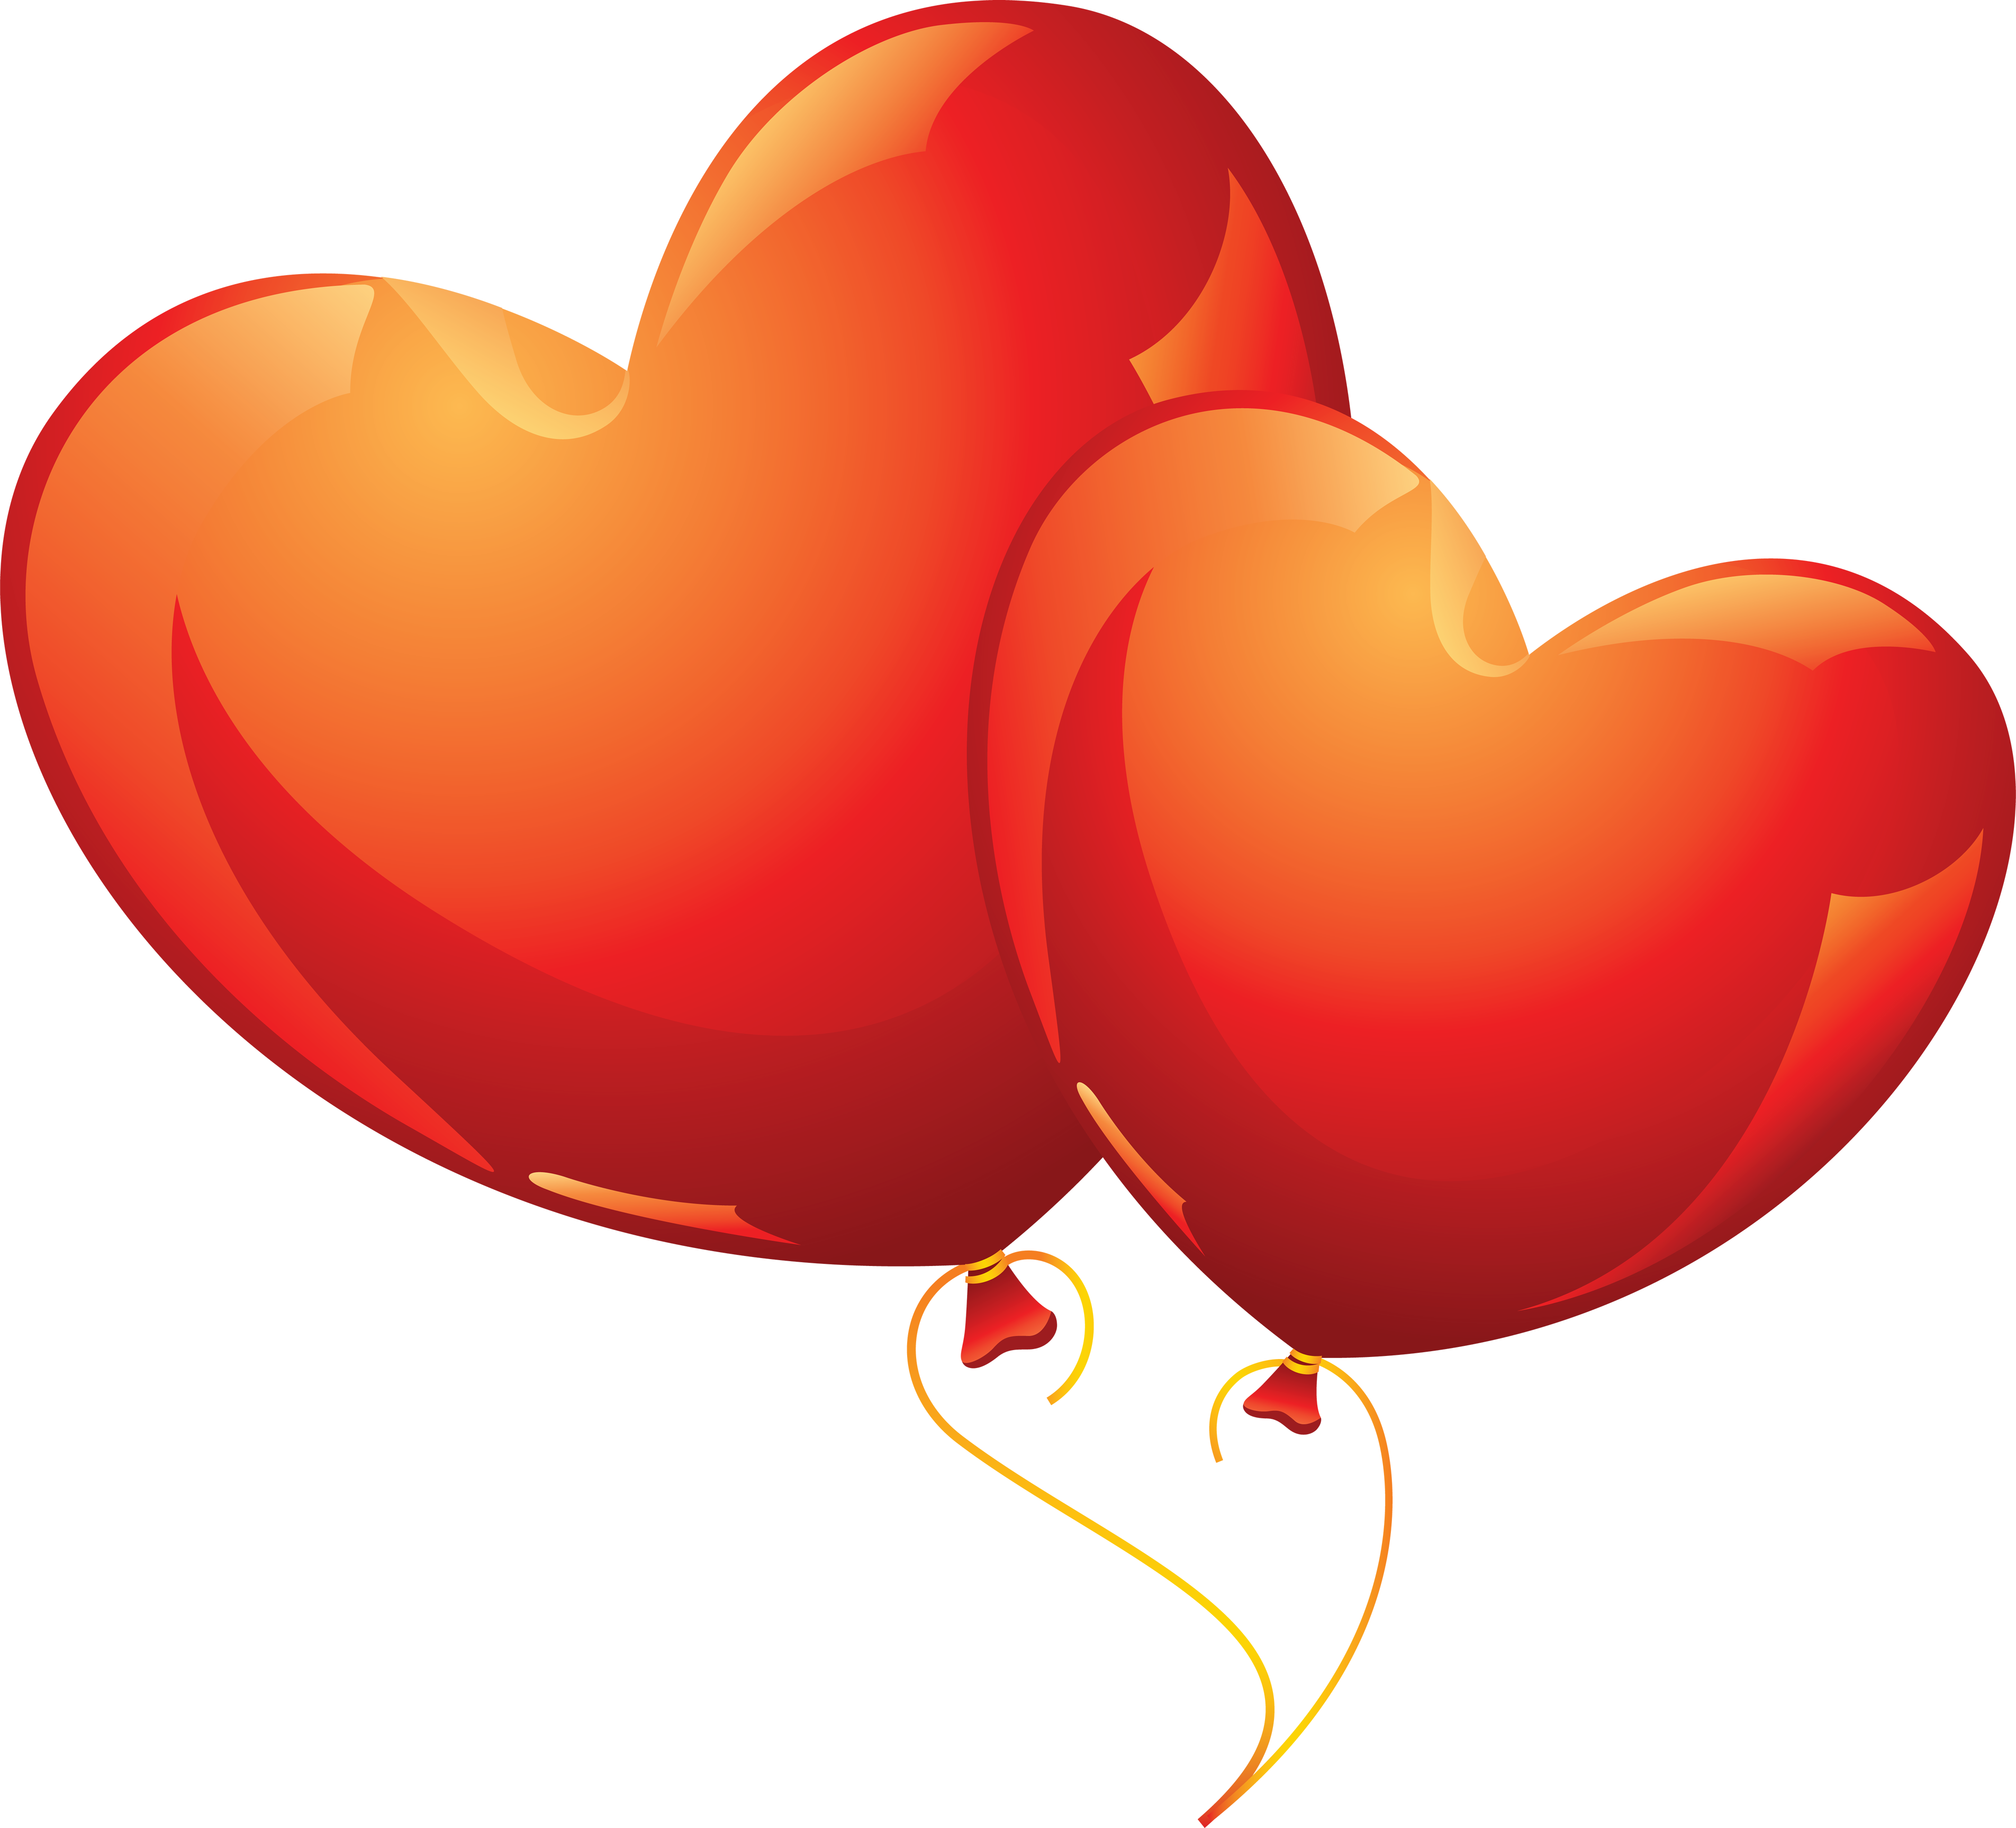 Balloon's PNG Image.